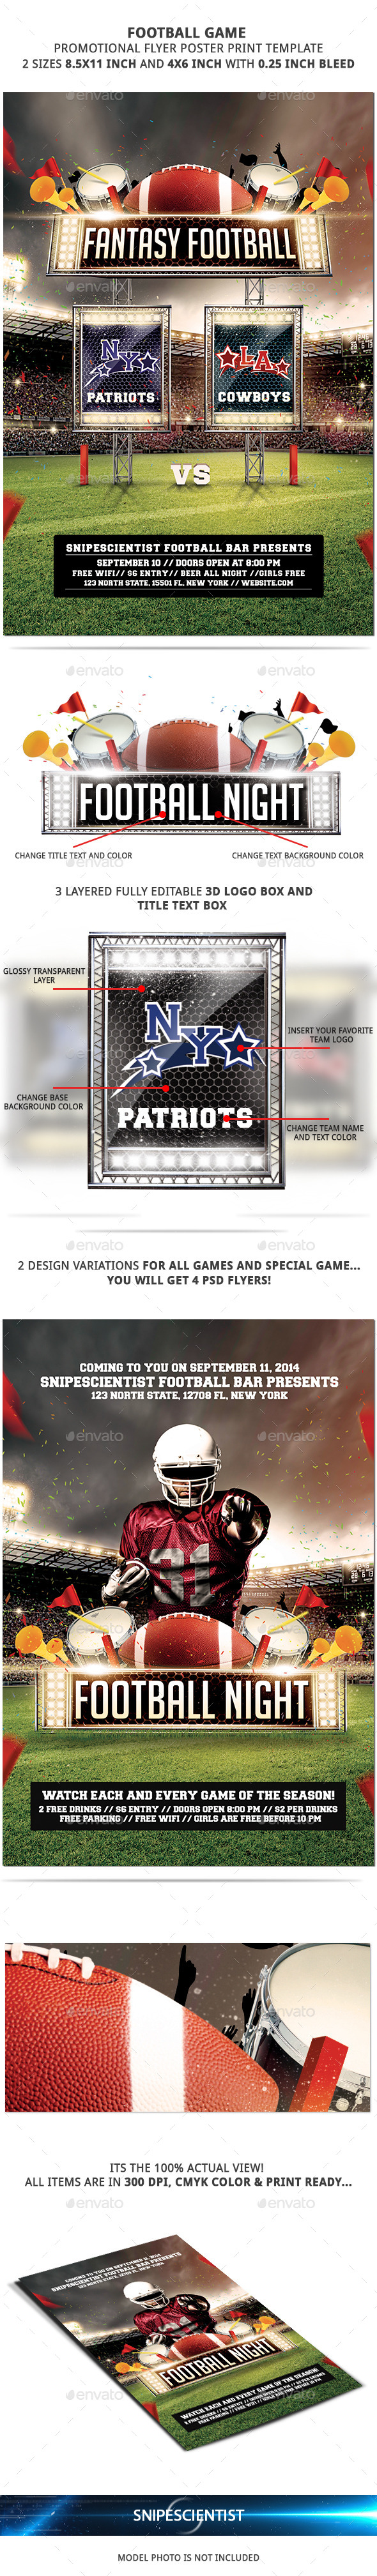 GraphicRiver FootBall Game Flyer Template With 2 Variations 8819981